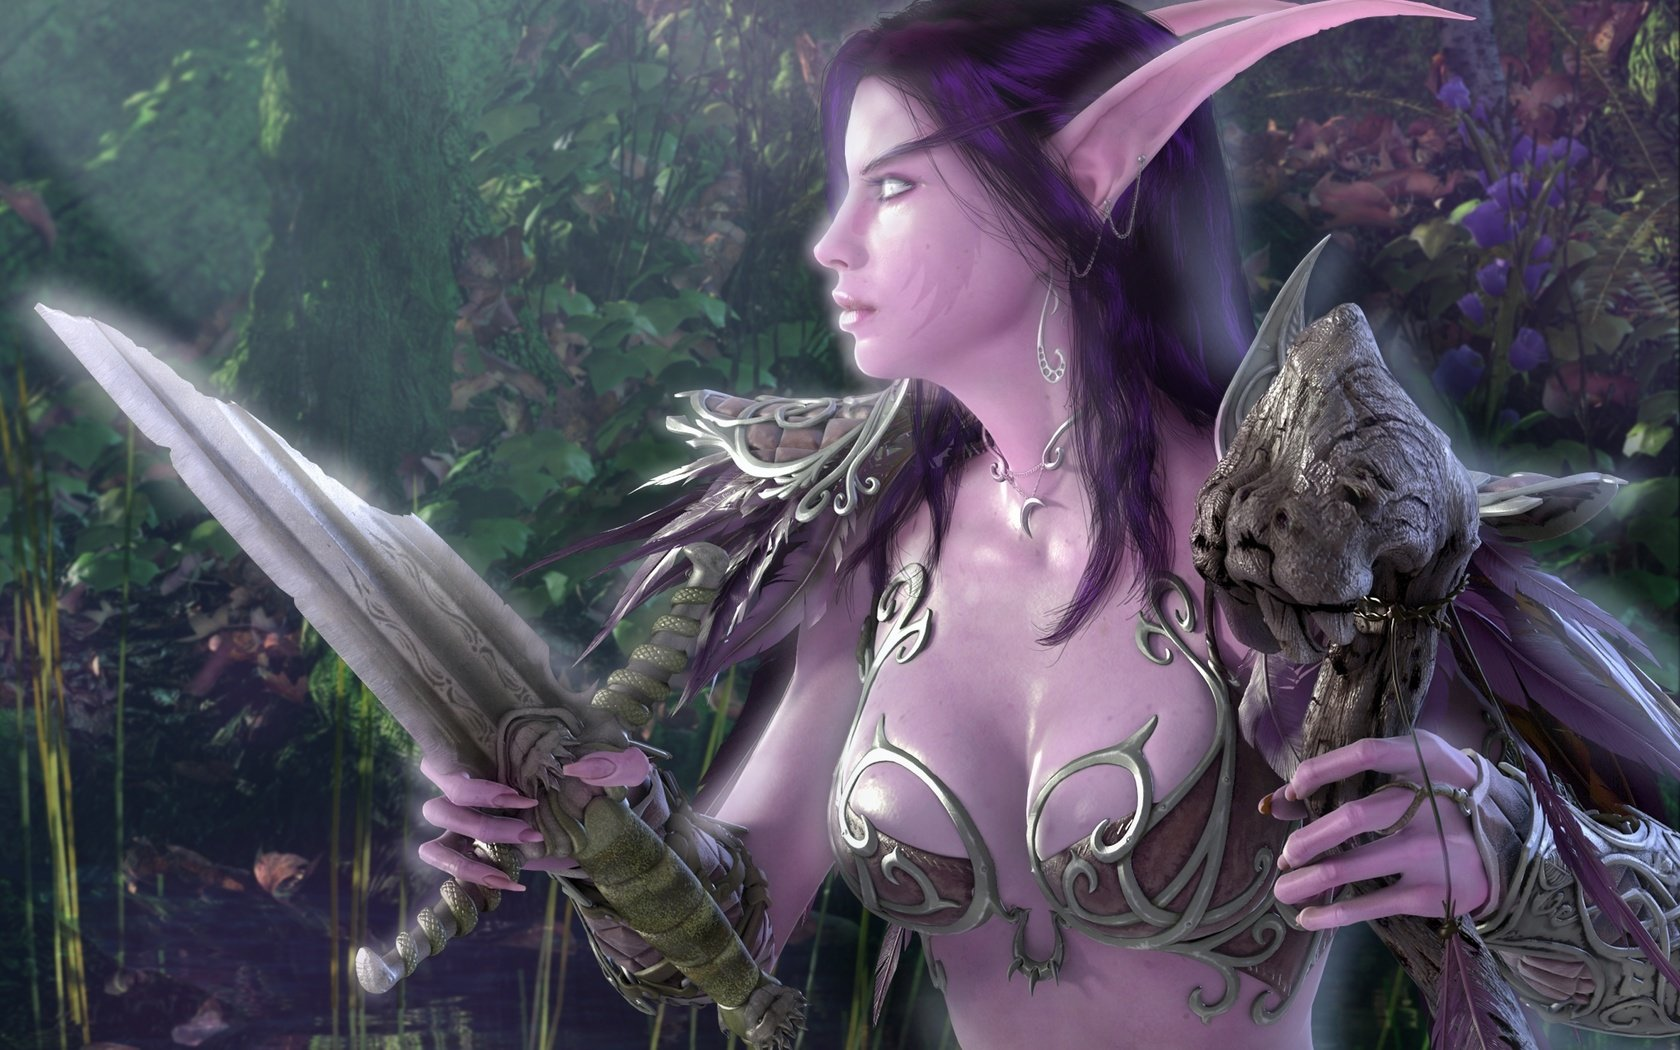 Night elf mount licking night elf vagi sex video